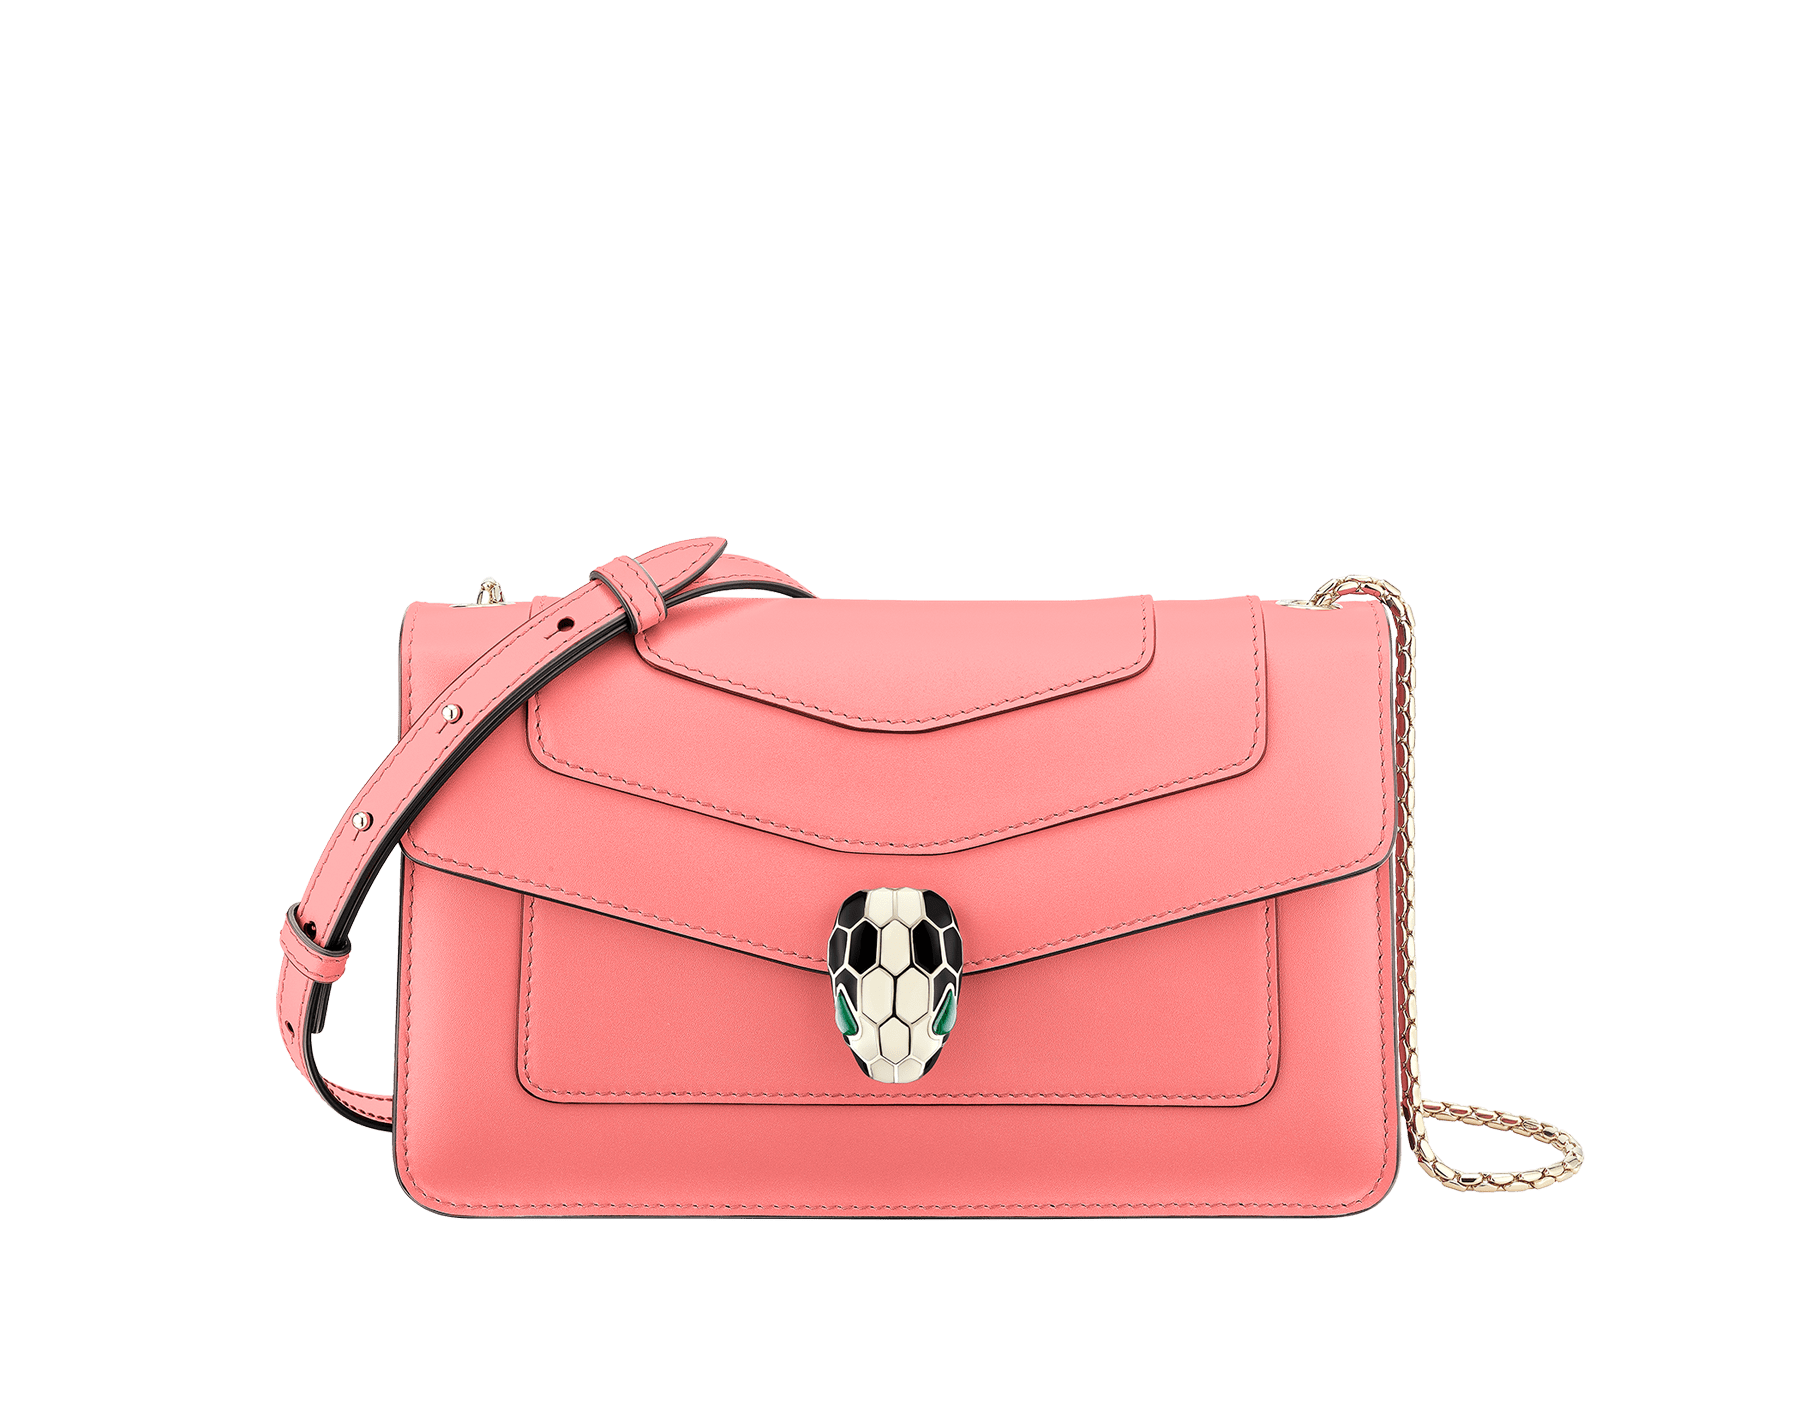 """Serpenti Forever"" crossbody bag in silky coral calf leather. Iconic snake head closure in light gold plated brass enriched with black and white enamel and green malachite eyes. 288708 image 1"